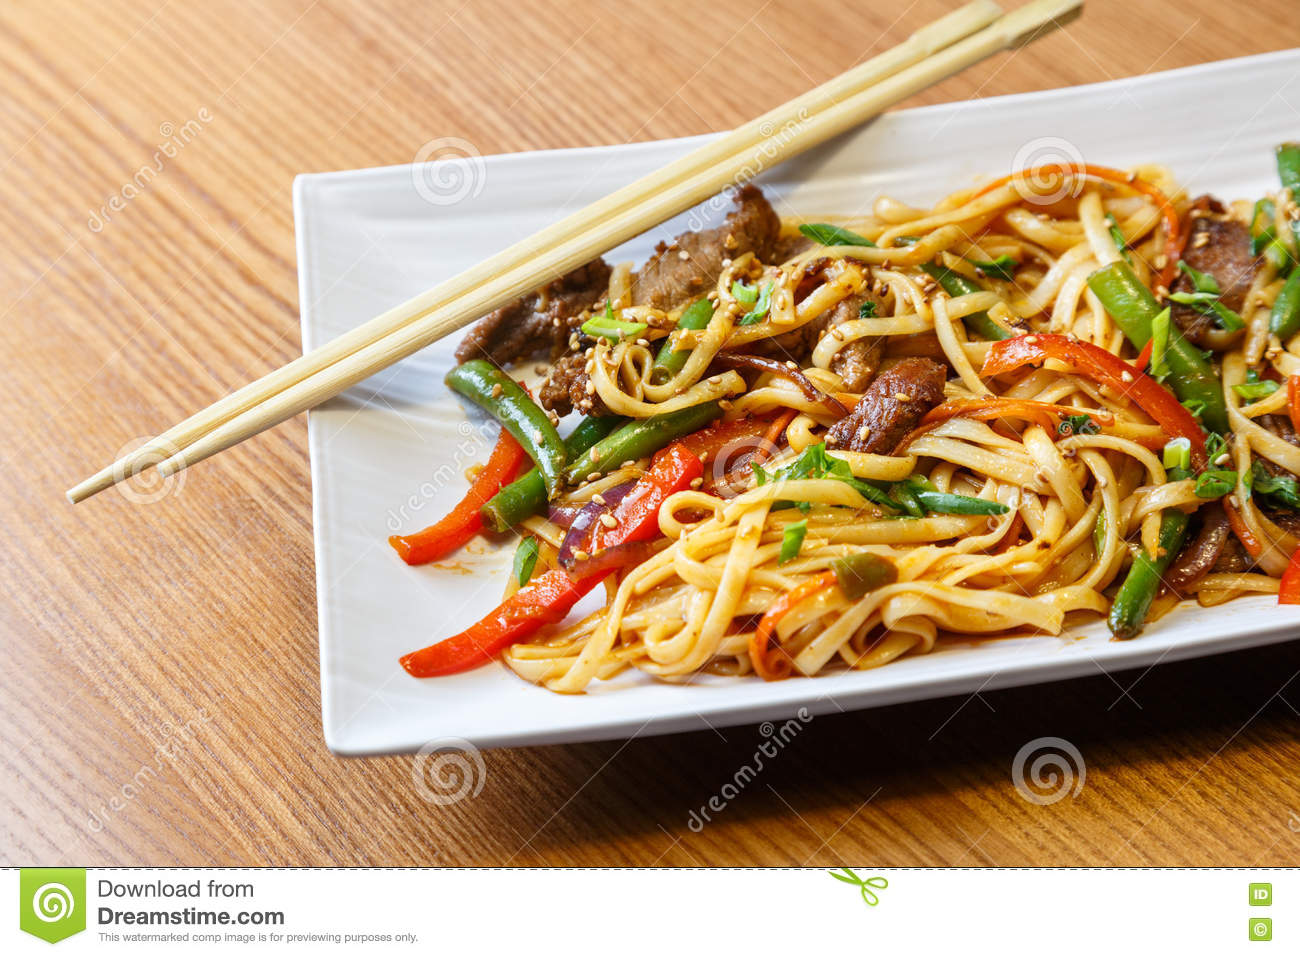 Udon Noodles With Beef In Asian Restaurant Stock Photo